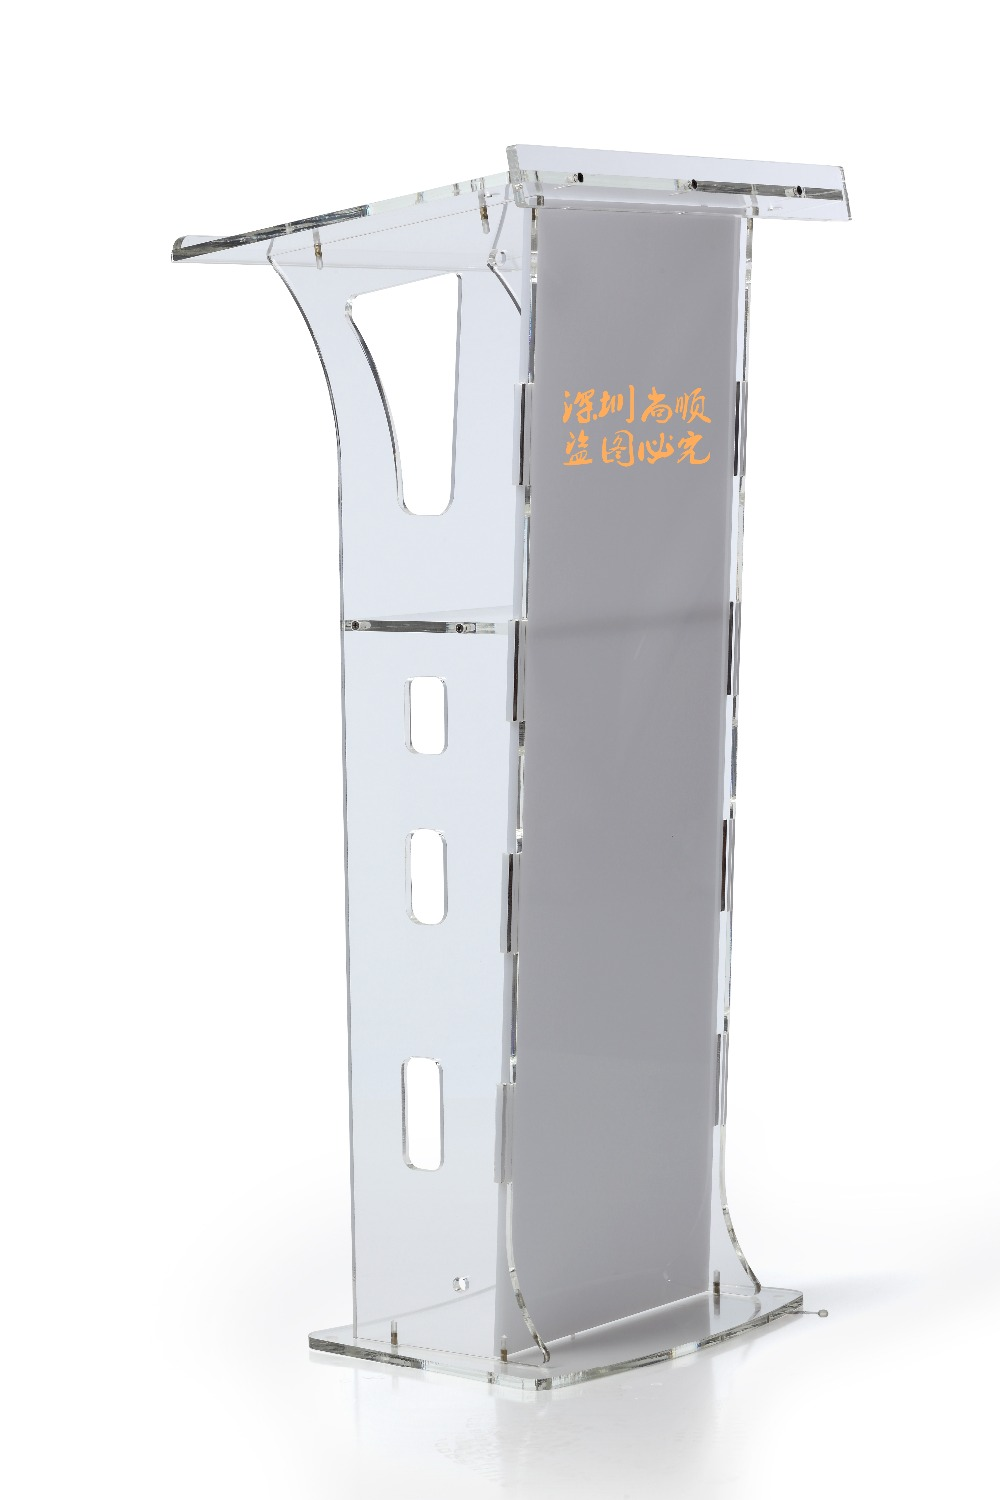 Crystal Podium Acrylic Crystal Transparent Platform Stage Launch Ceremony Hotel Podium Church Pulpit